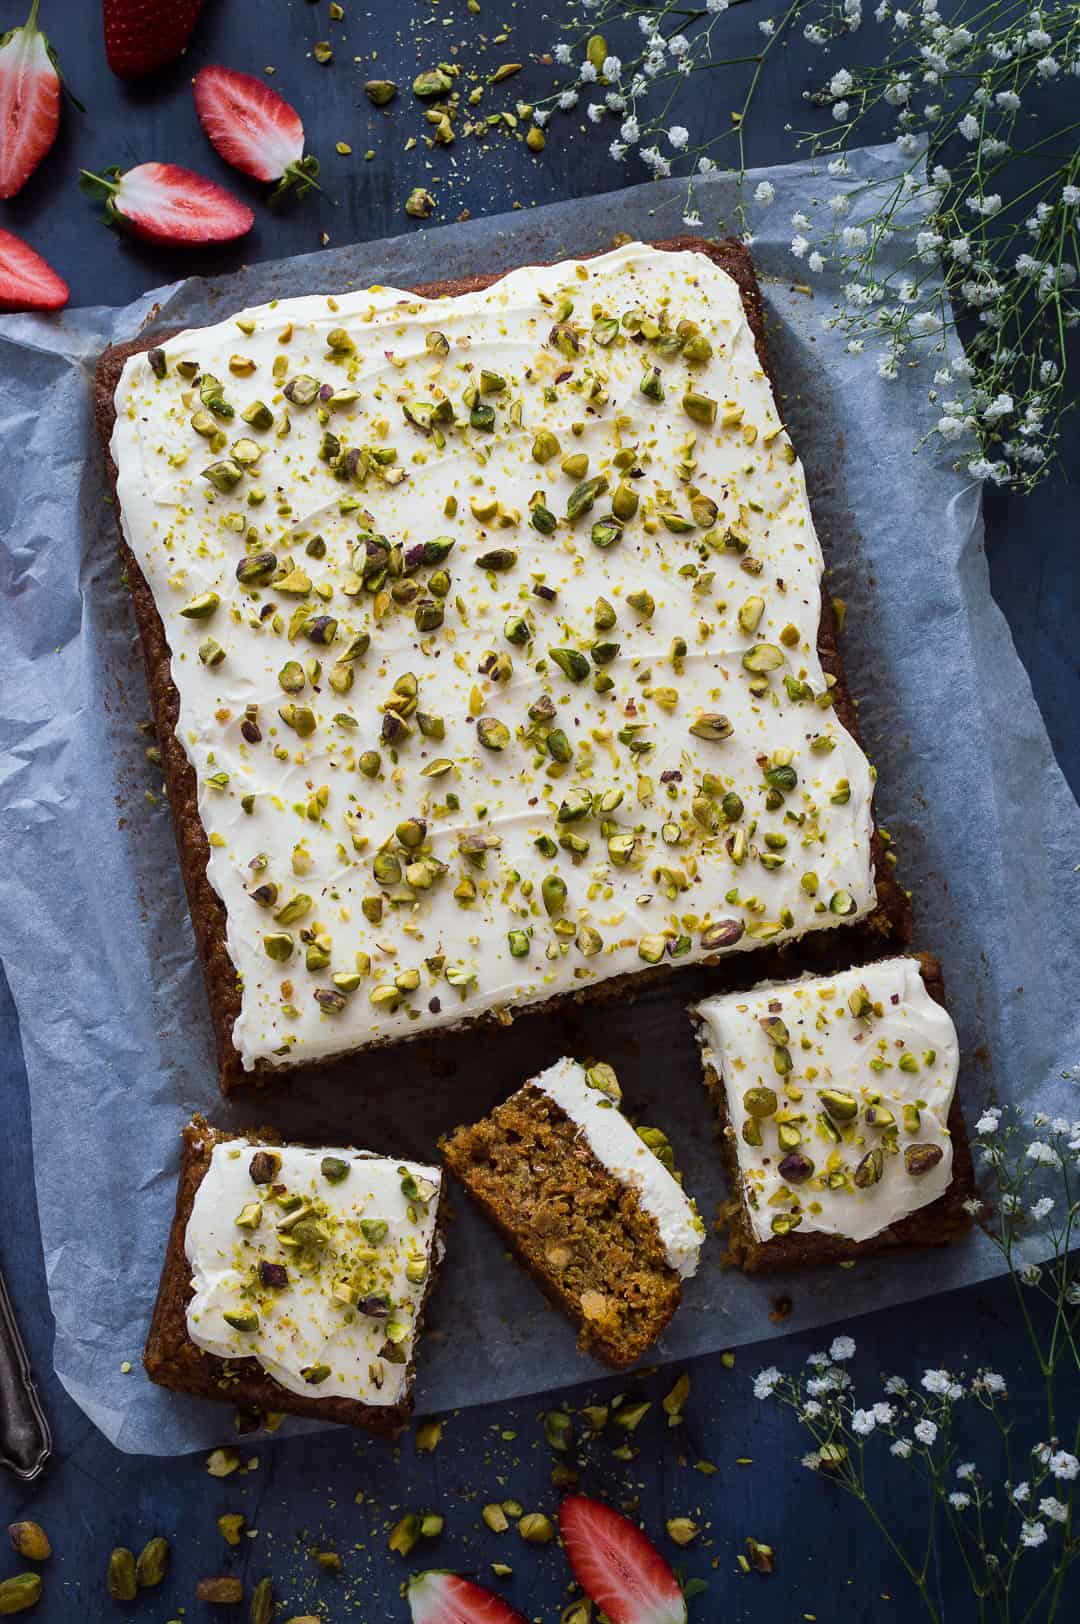 Carrot pineapple and pistachio sheet cake with cream cheese frosting.